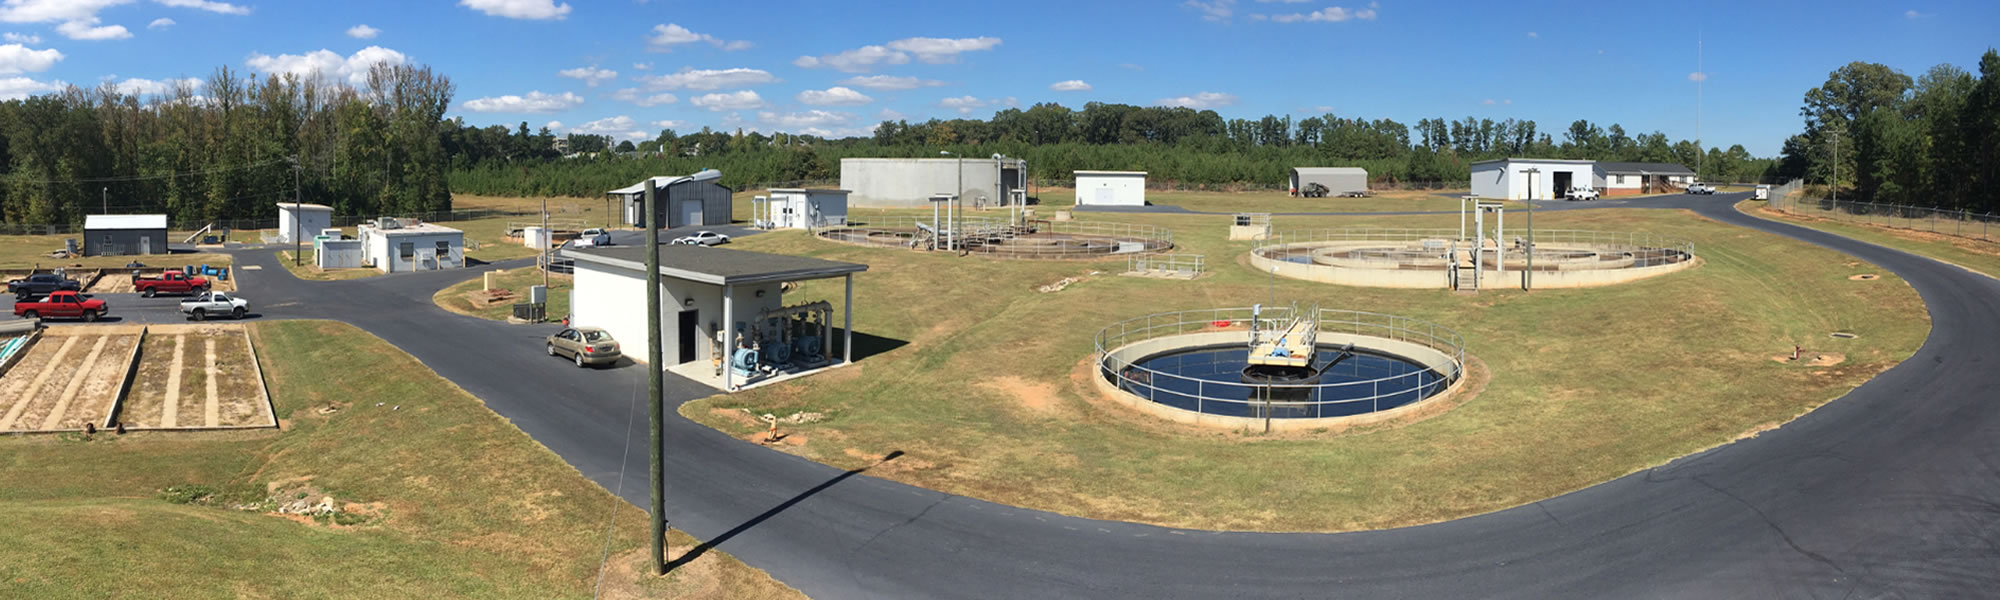 City of Inman Wastewater Treatment Plant